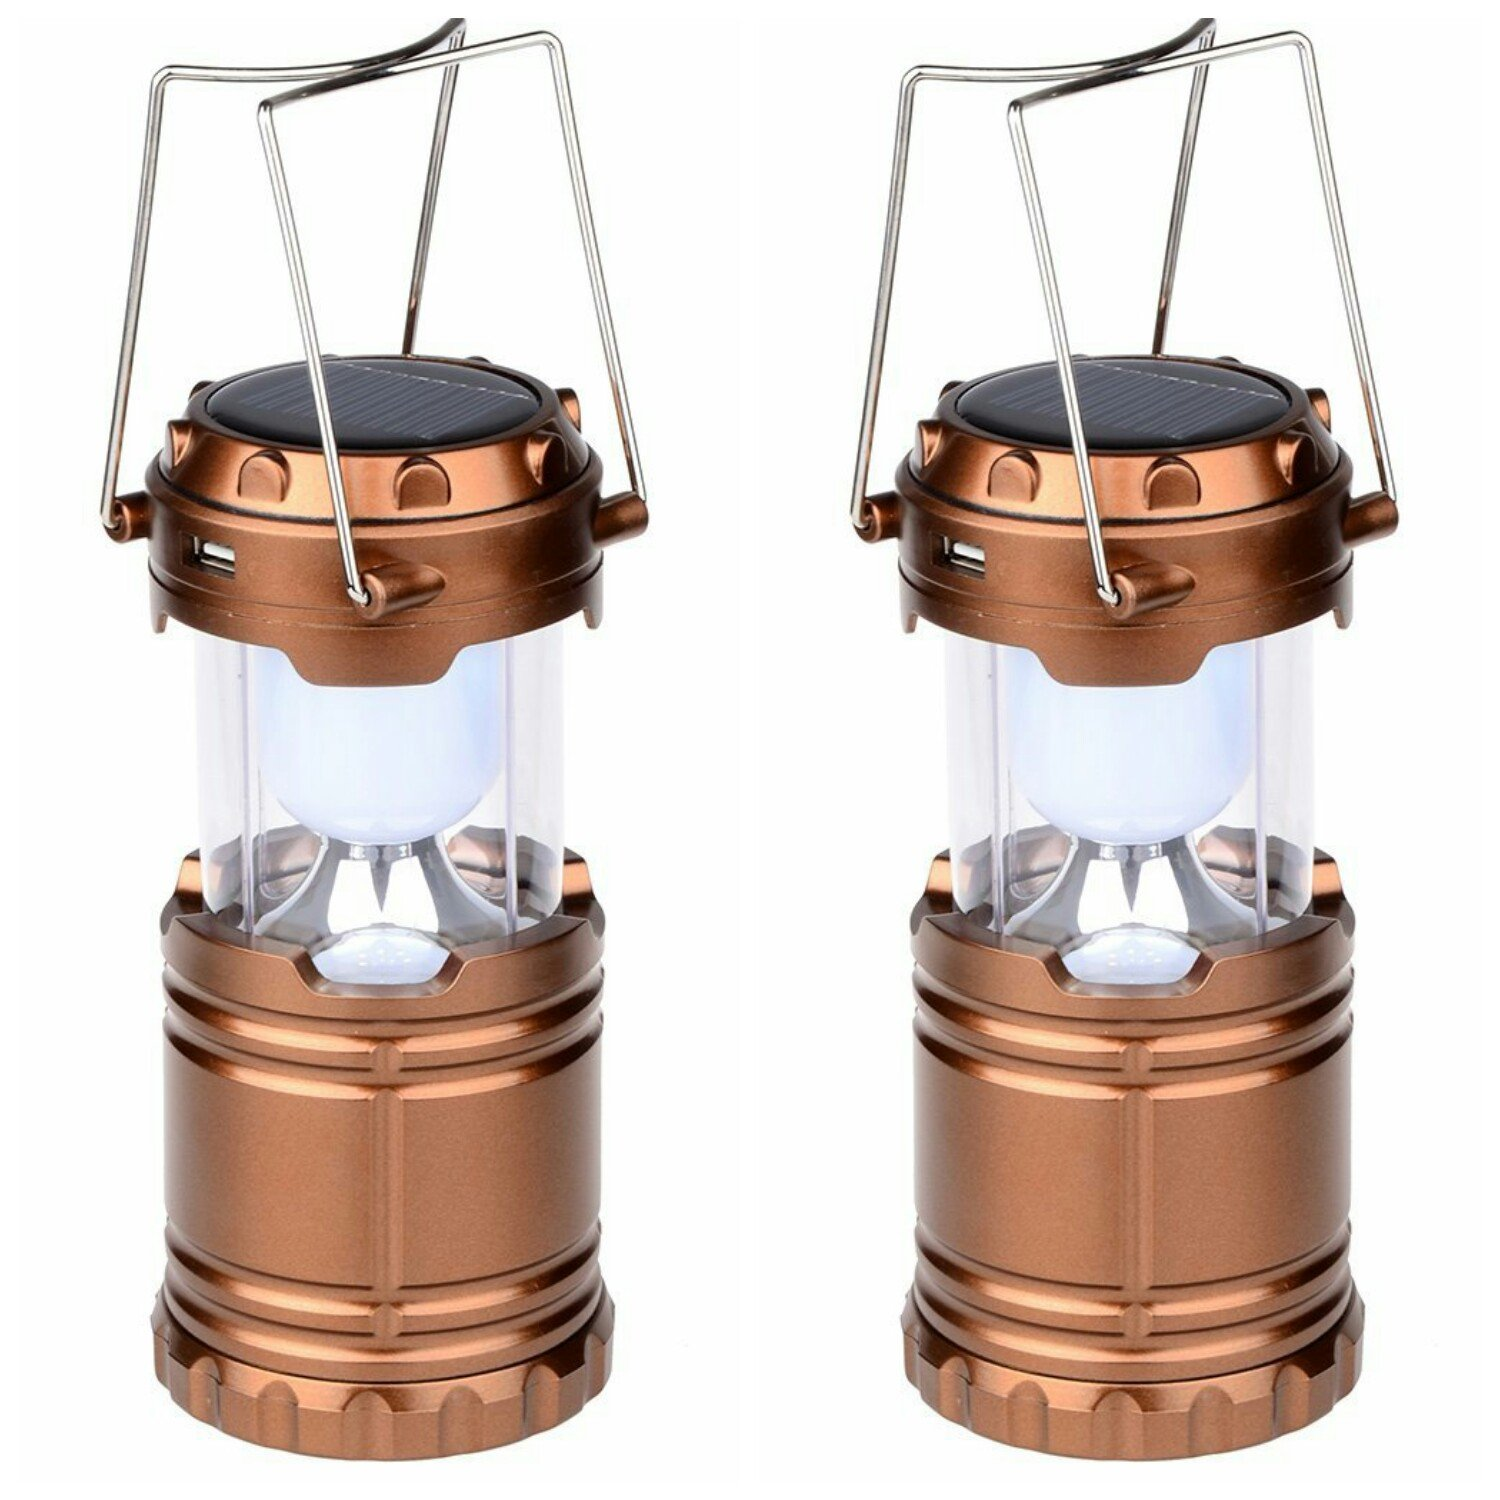 Camping Solar Lanterns,- Solar/DC Rechargeable - Water Resistant - Shock Proof - Battery Powered Ultra Bright LED Camping Lamp for Outdoor Camping,Hiking,Emergencies,Power Outages (Bronze, 2-Pack) by ABC